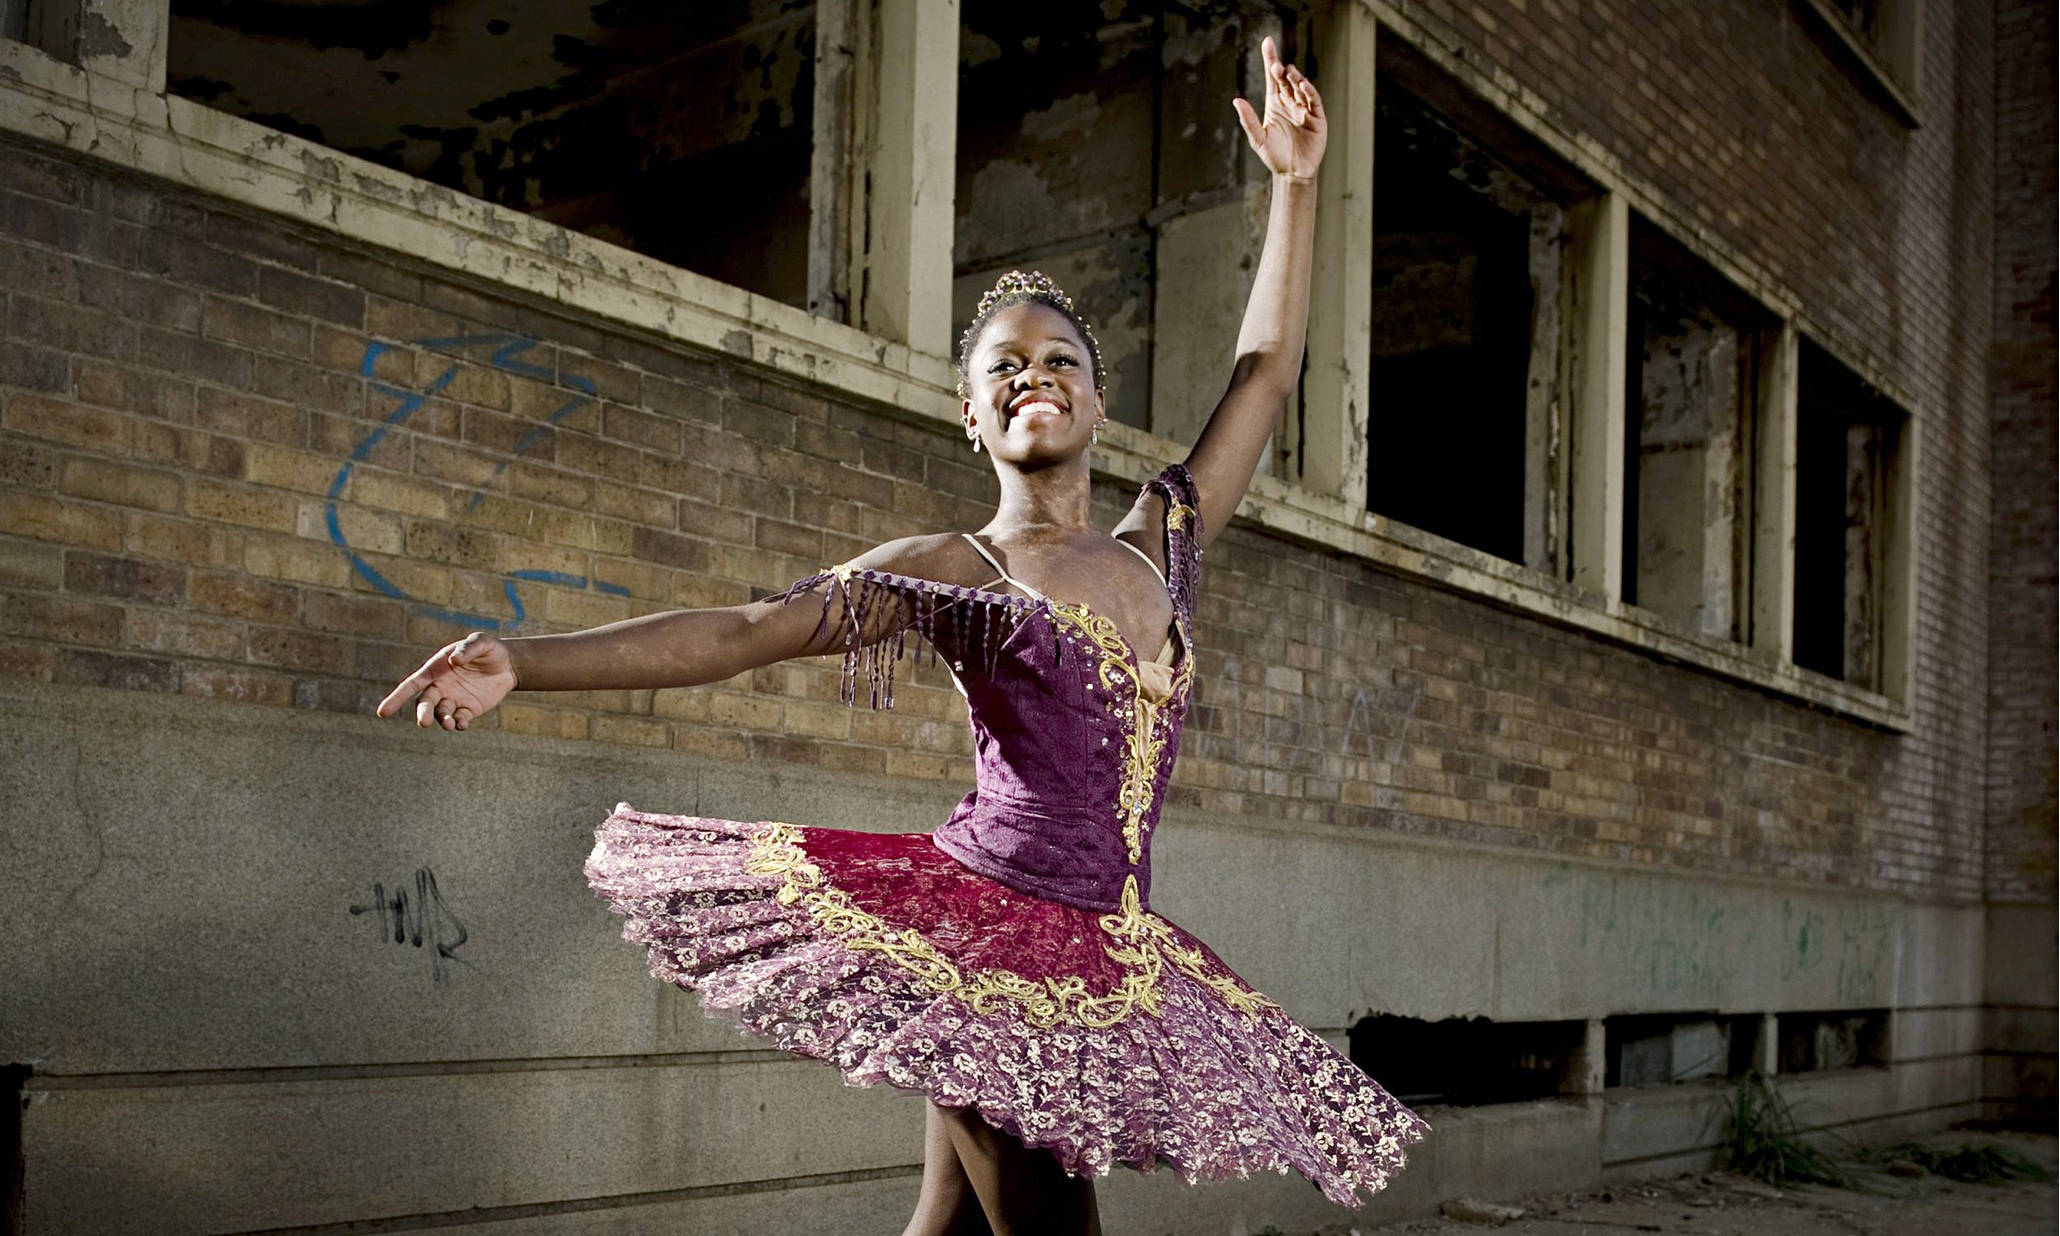 Michaela Deprince There Are Practically No Black Dancers